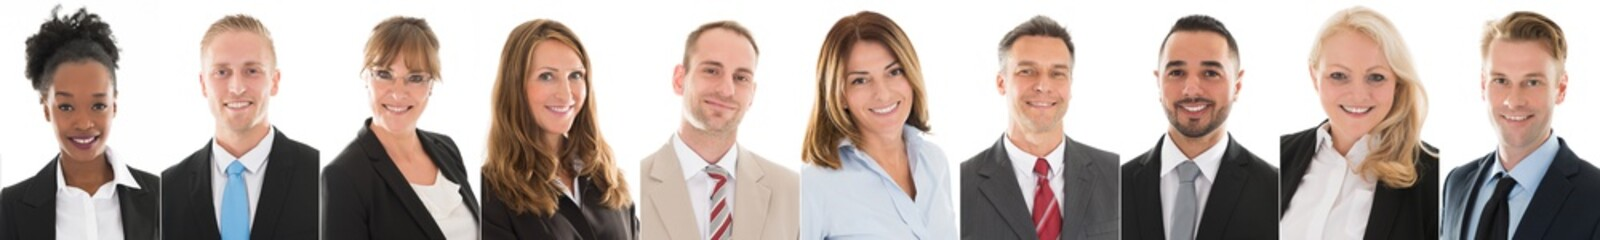 Set Of Smiling Businesspeople